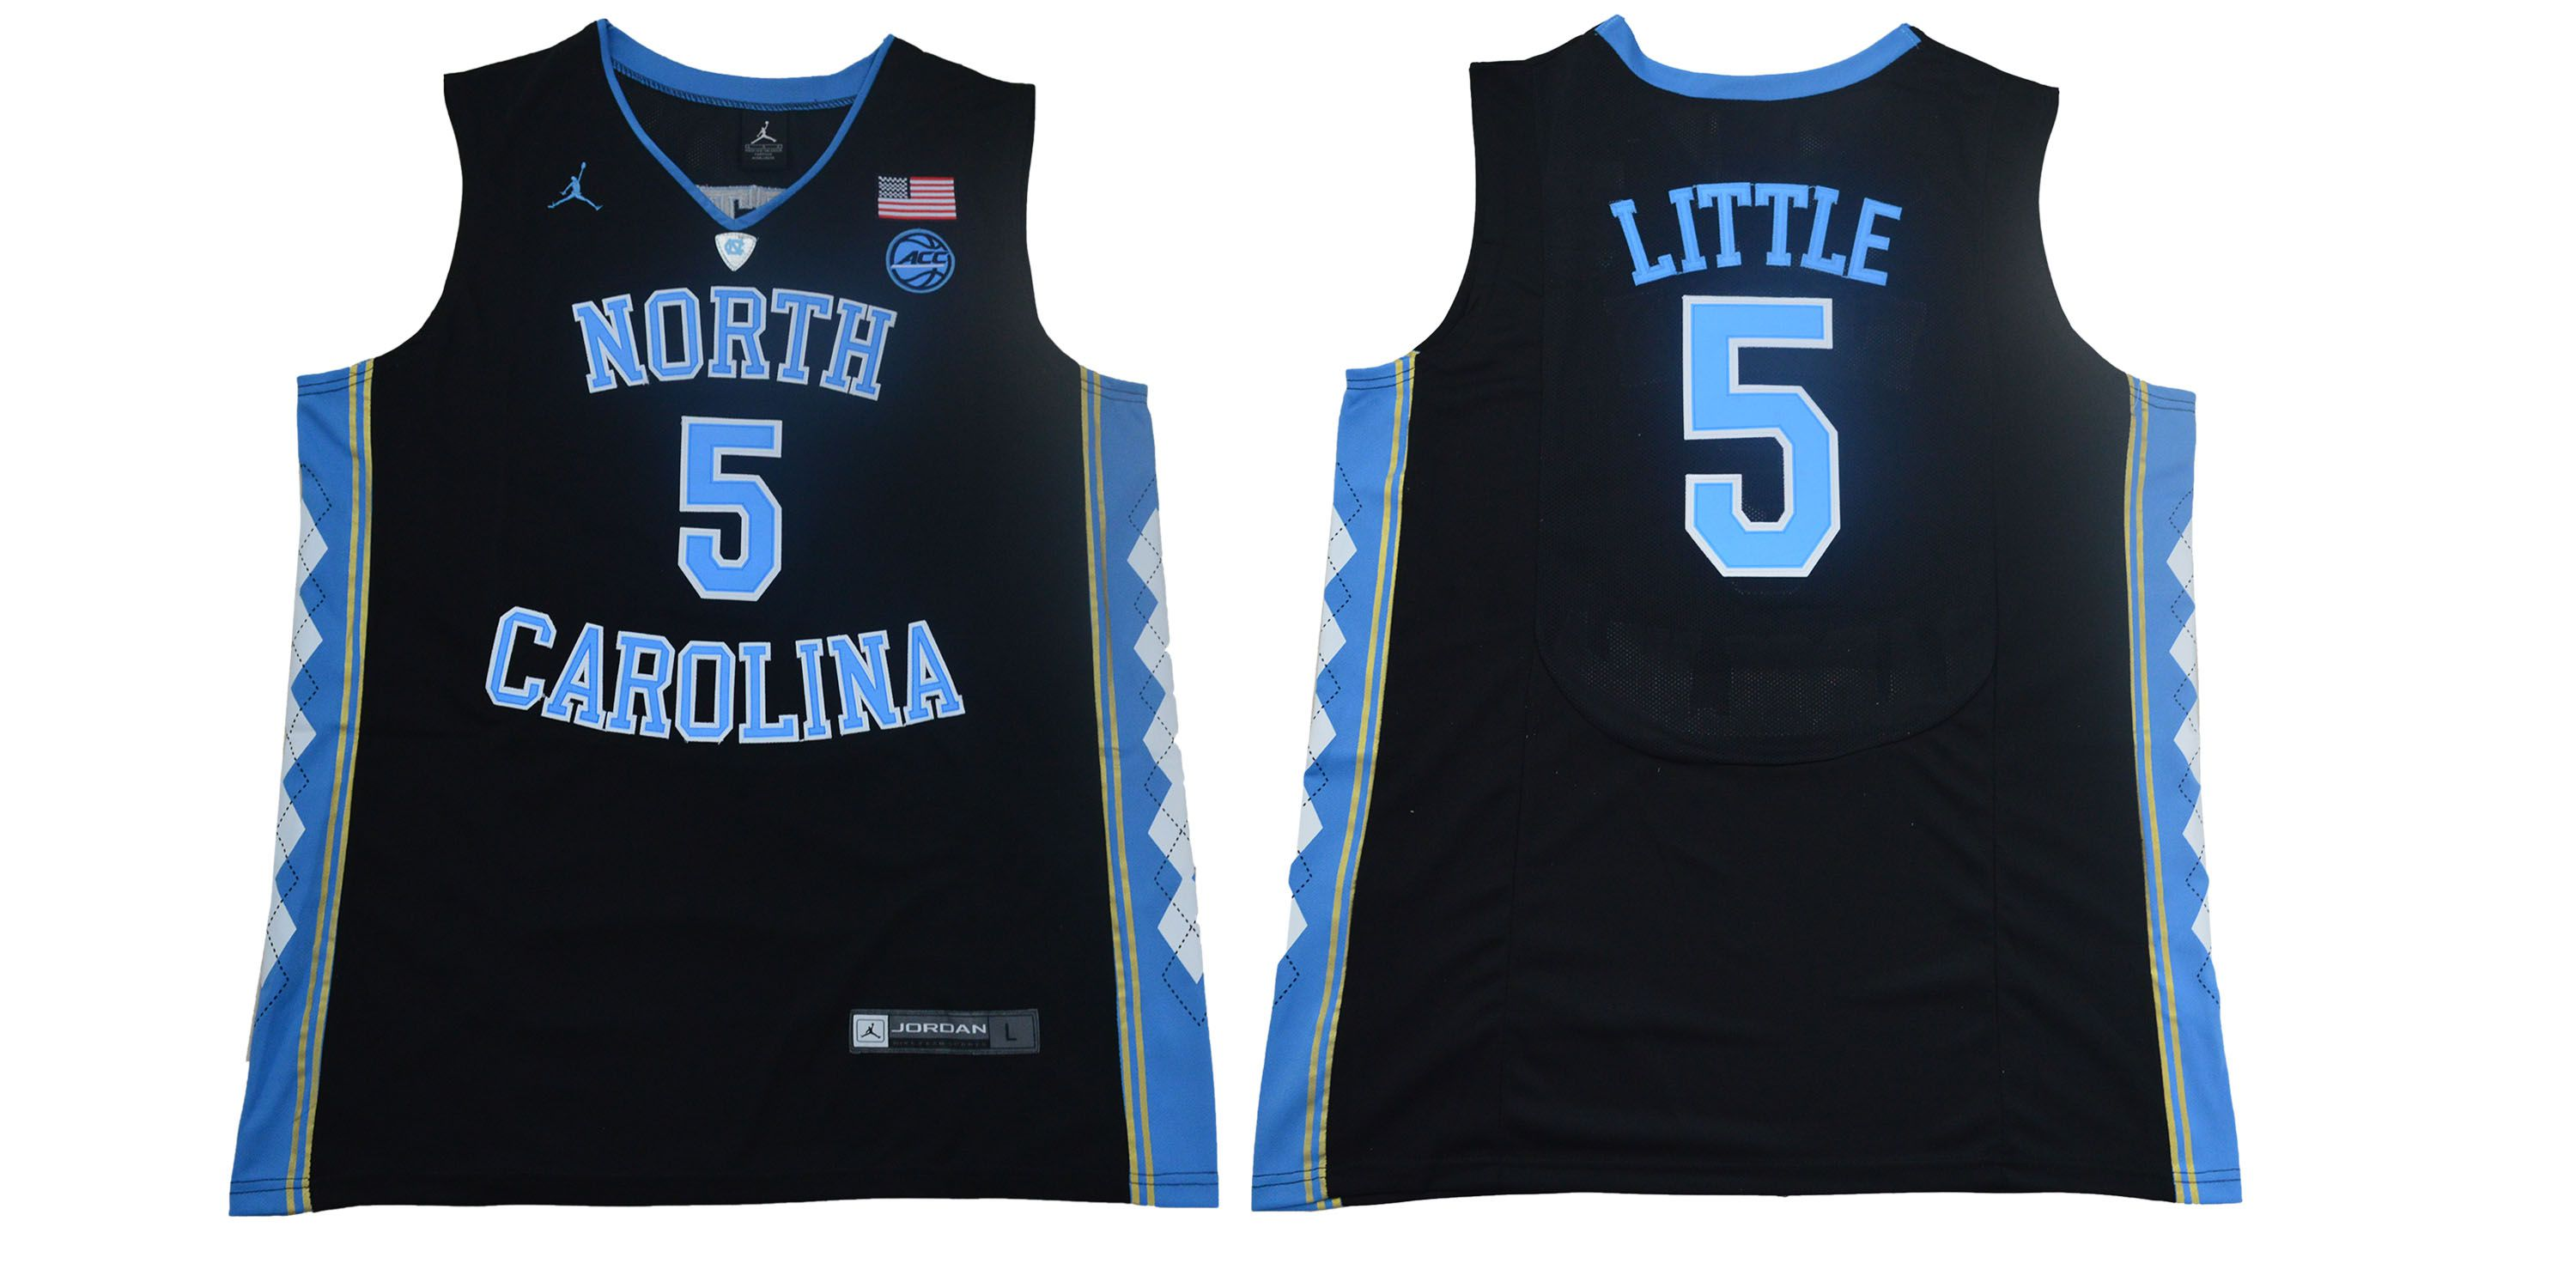 Men North Carolina Tar Heels 5 Little Black NBA NCAA Jerseys